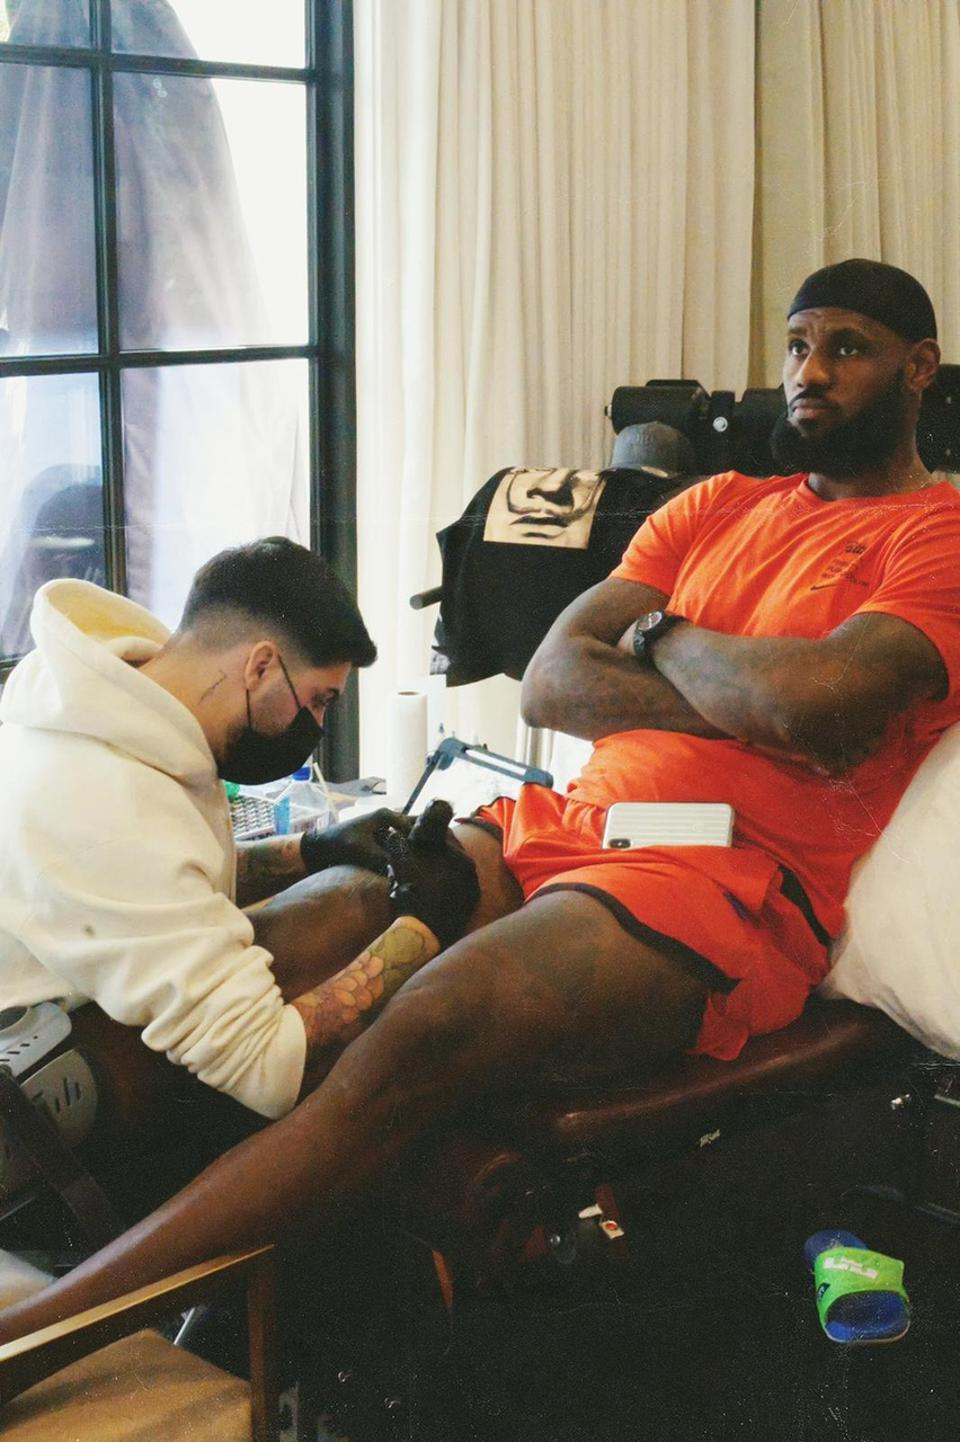 Ganga Tattoo tattooed LeBron James,  an American professional basketball player for the Los Angeles Lakers of the NBA